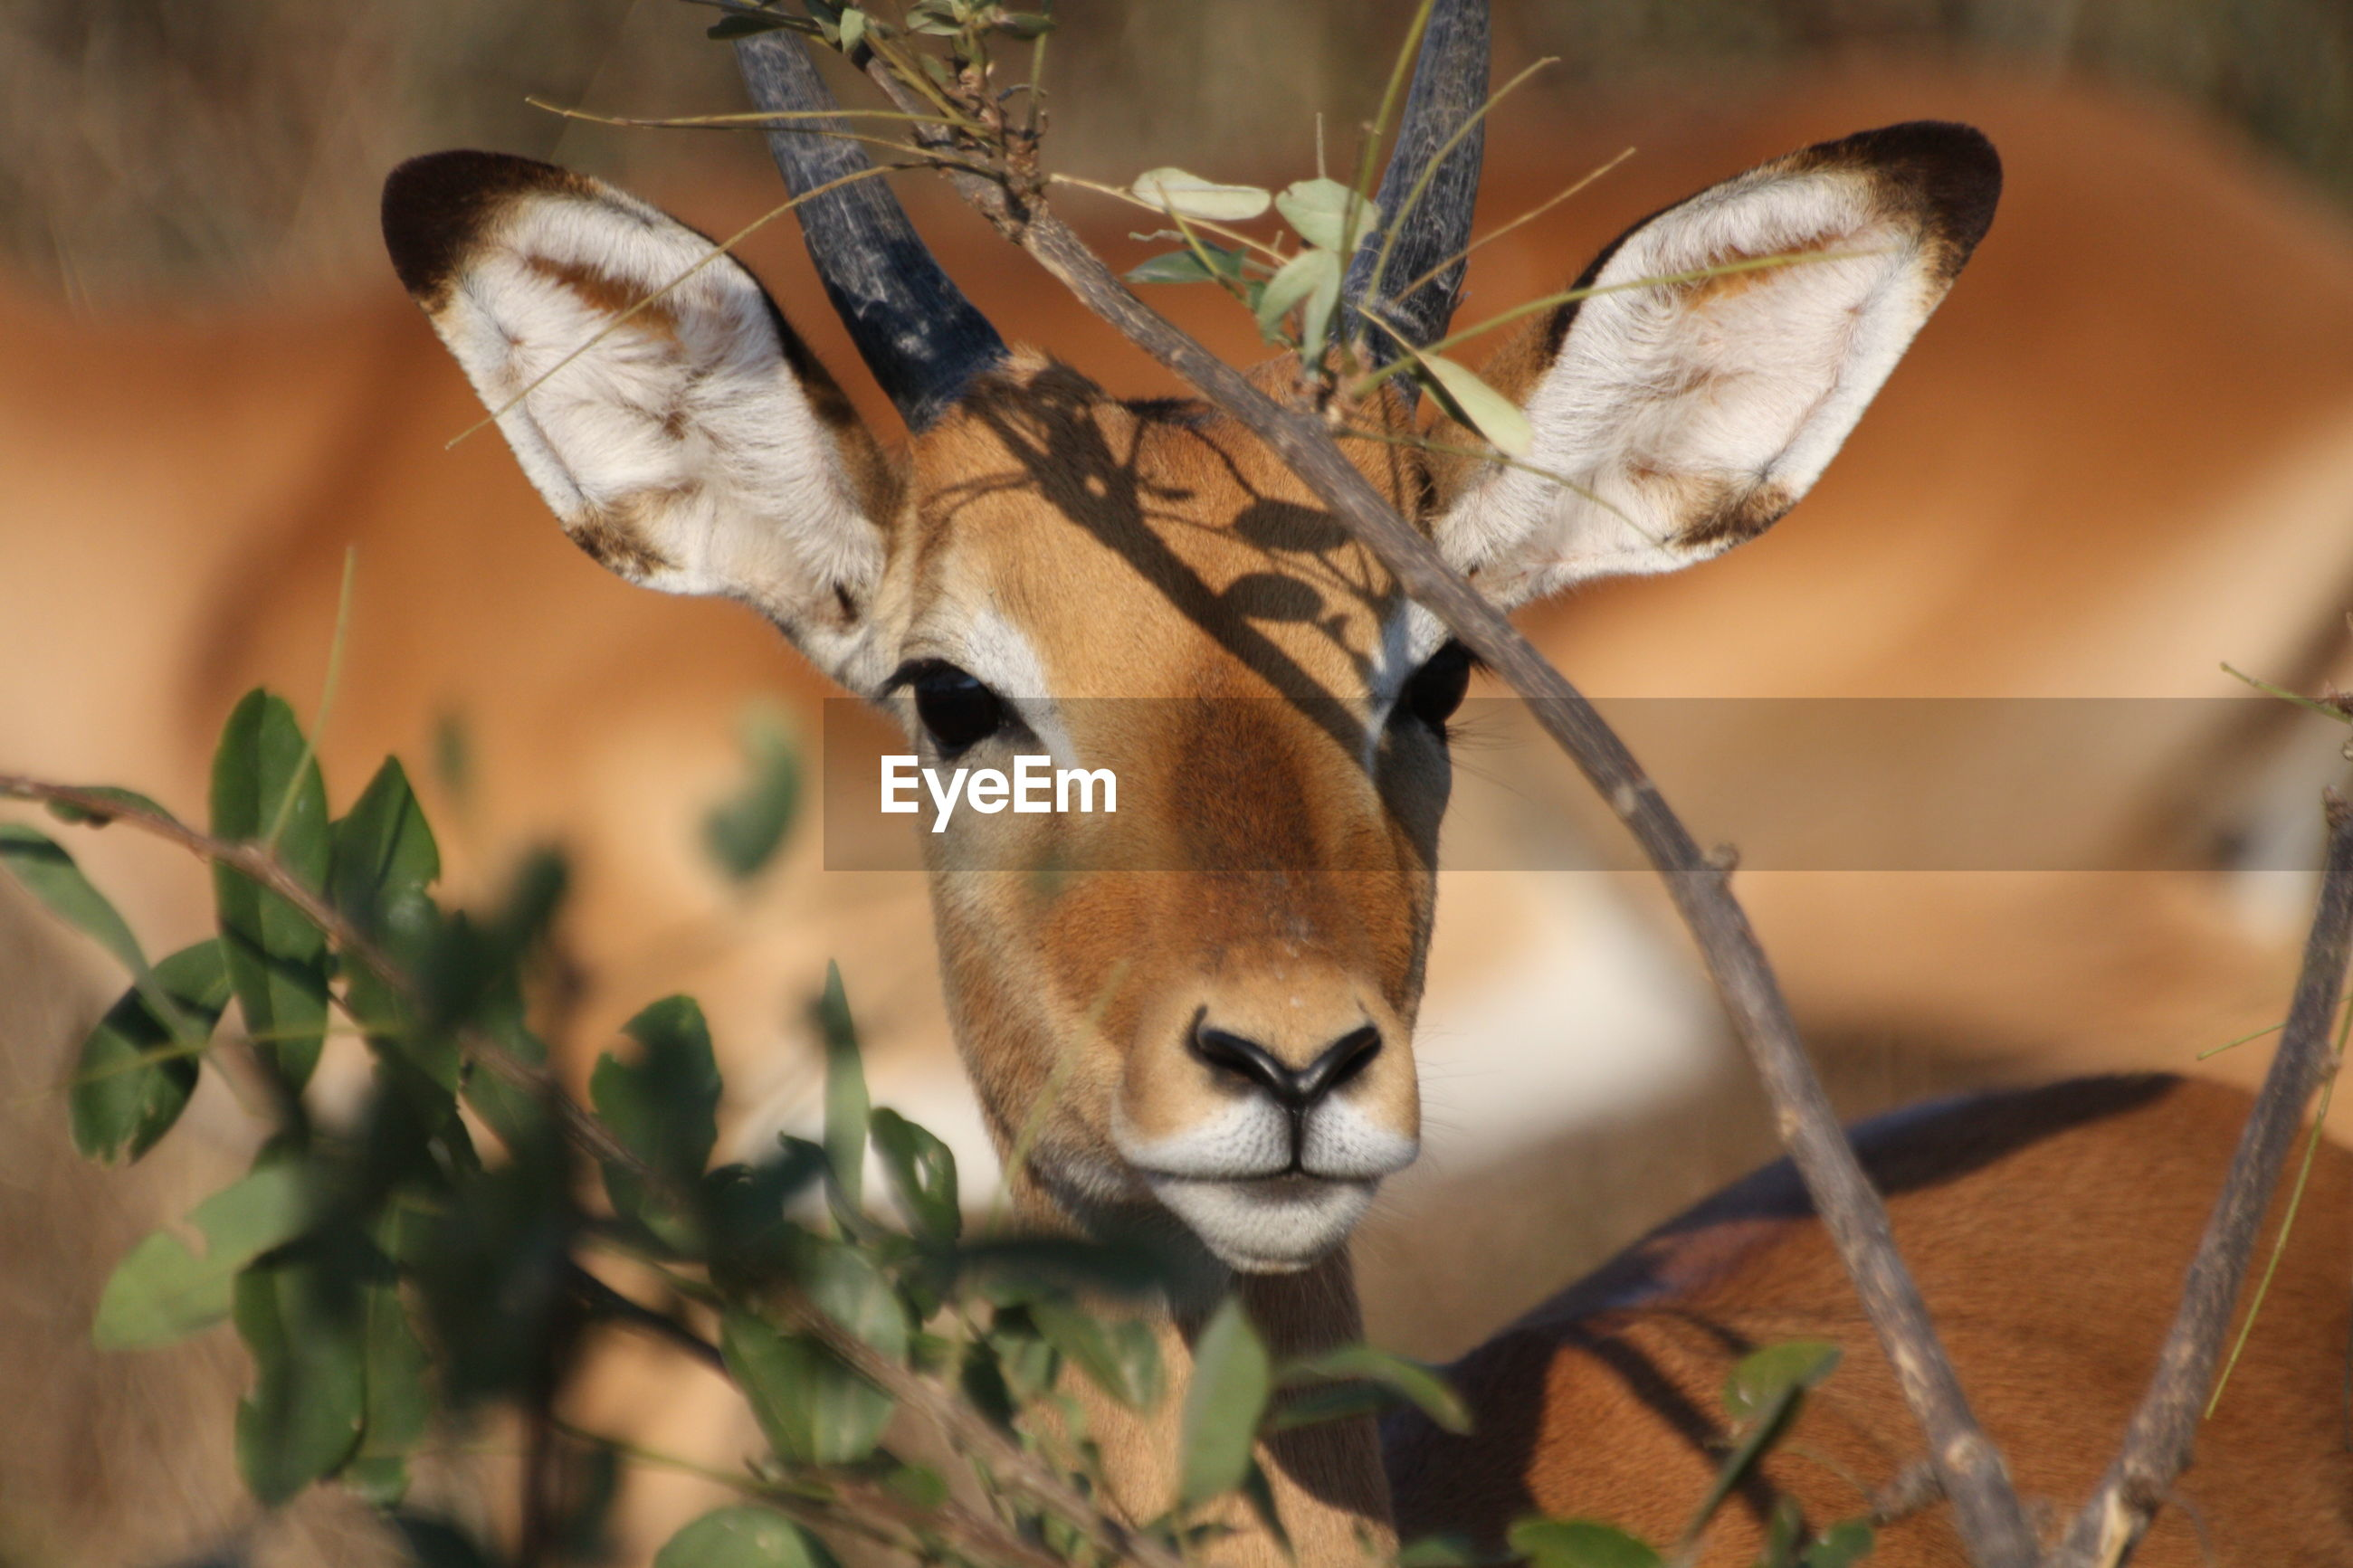 Close-up of impala by plant